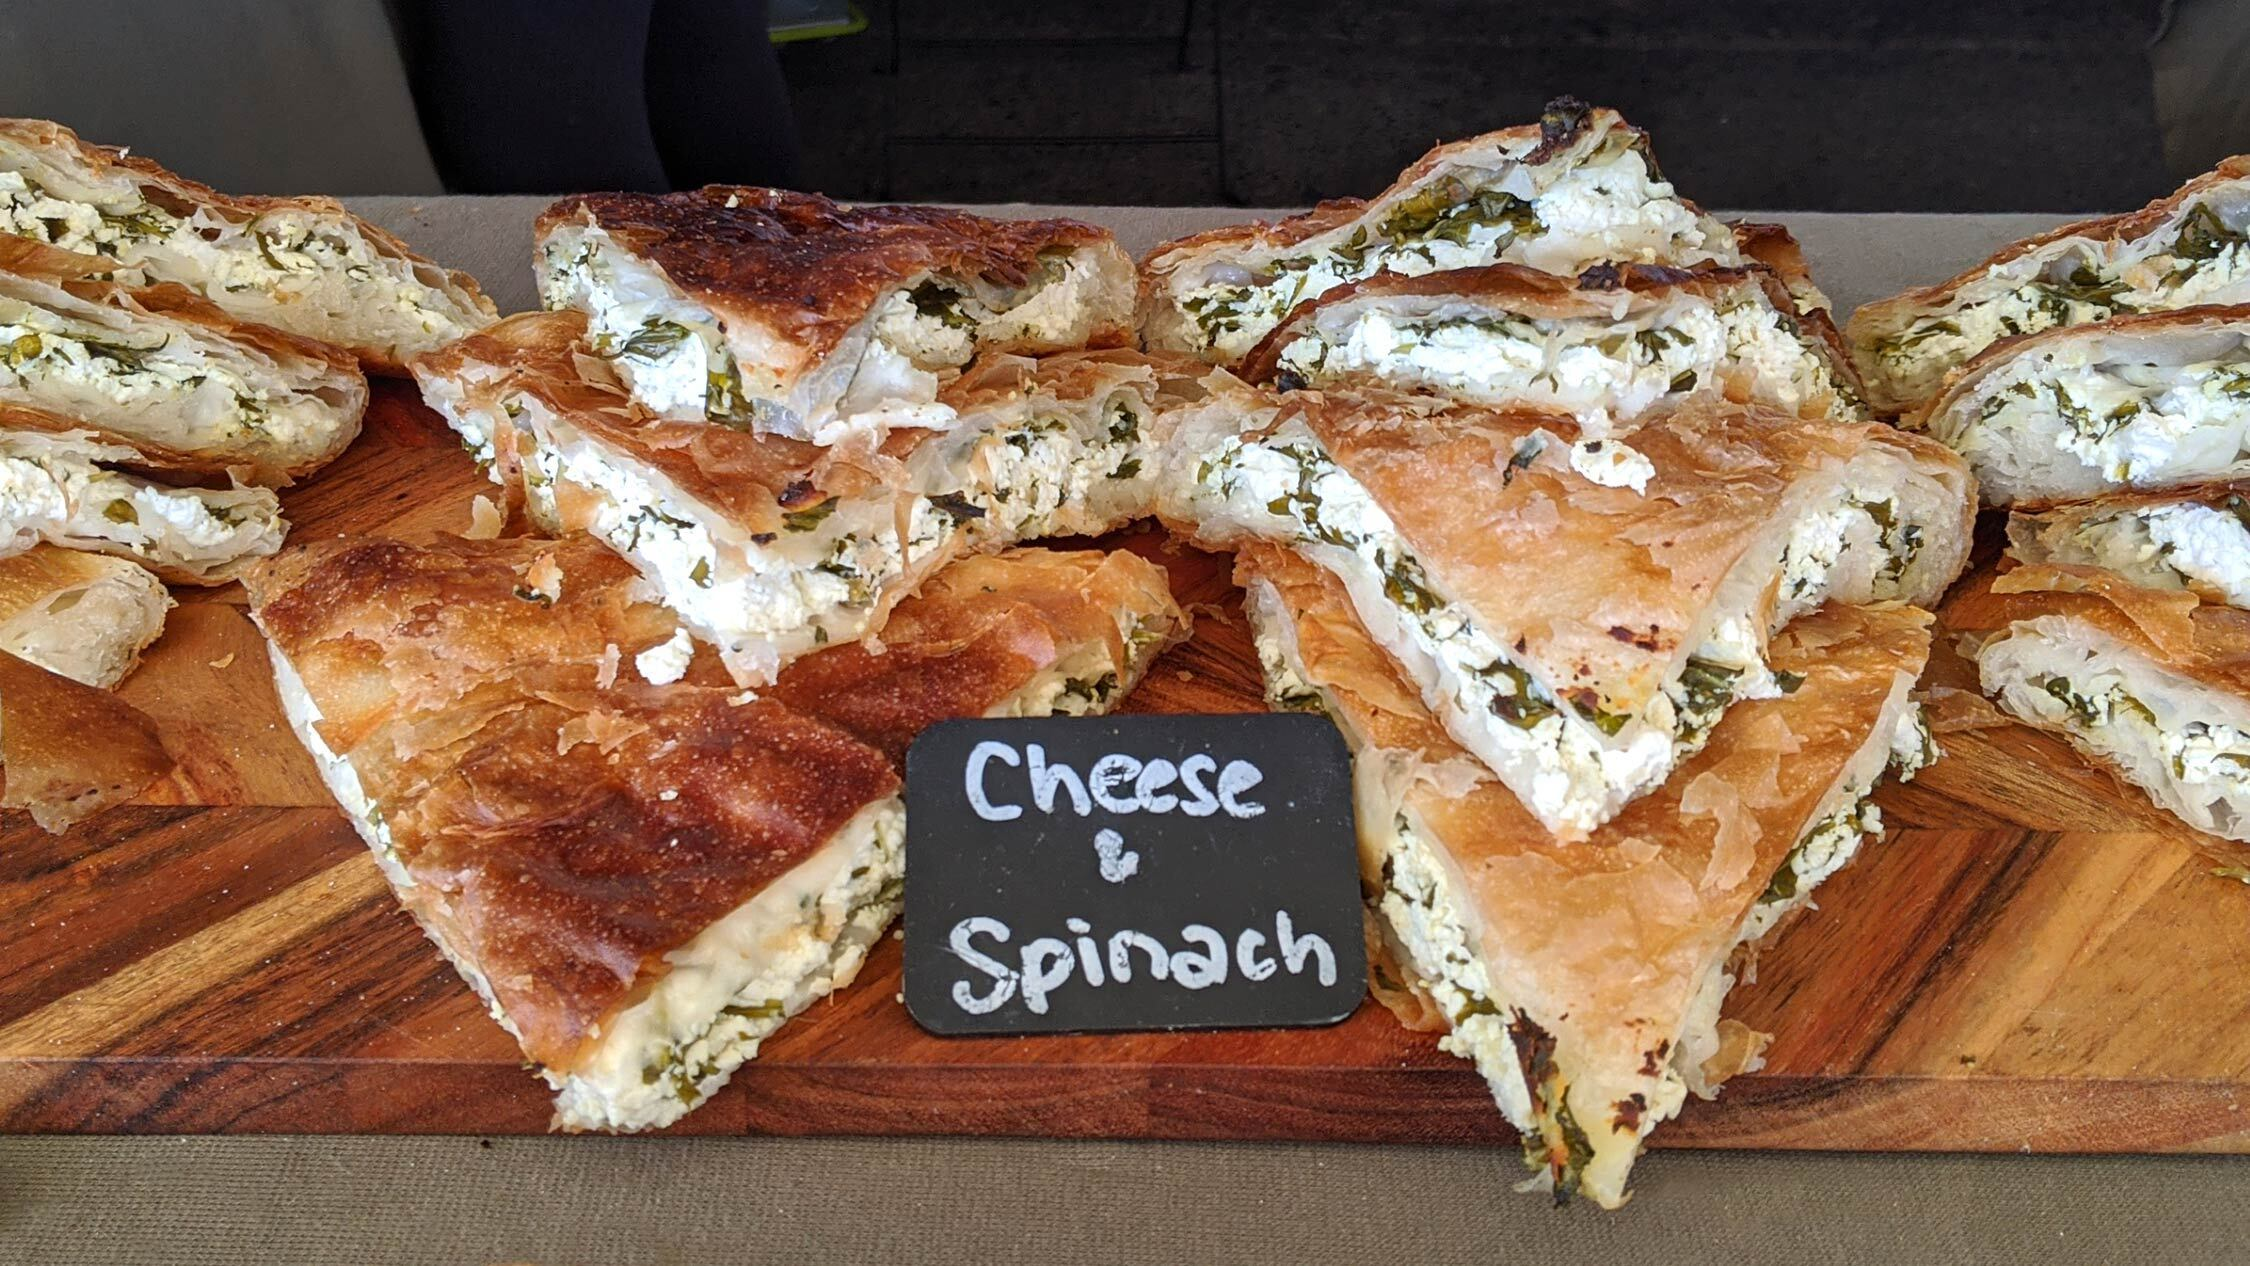 Cheese and Spinach burek on a wooden board